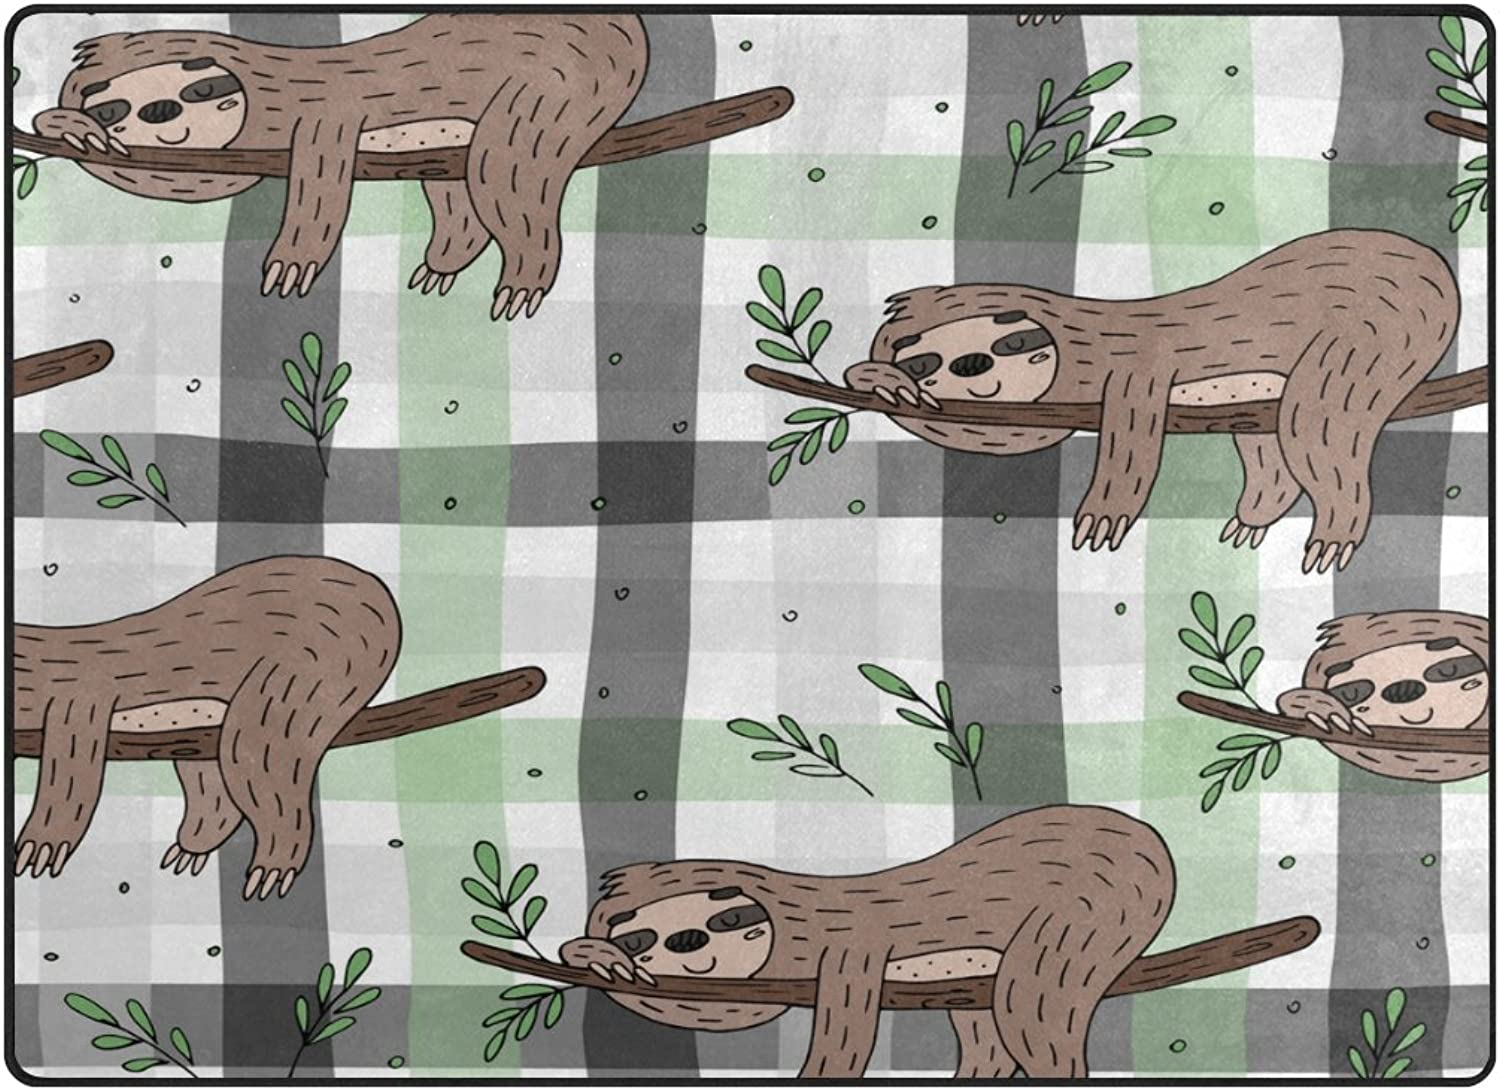 SUABO 80 x 58 inches Area Rug Non-Slip Floor Mat Doodle Sloth Printed Doormats for Living Room Bedroom